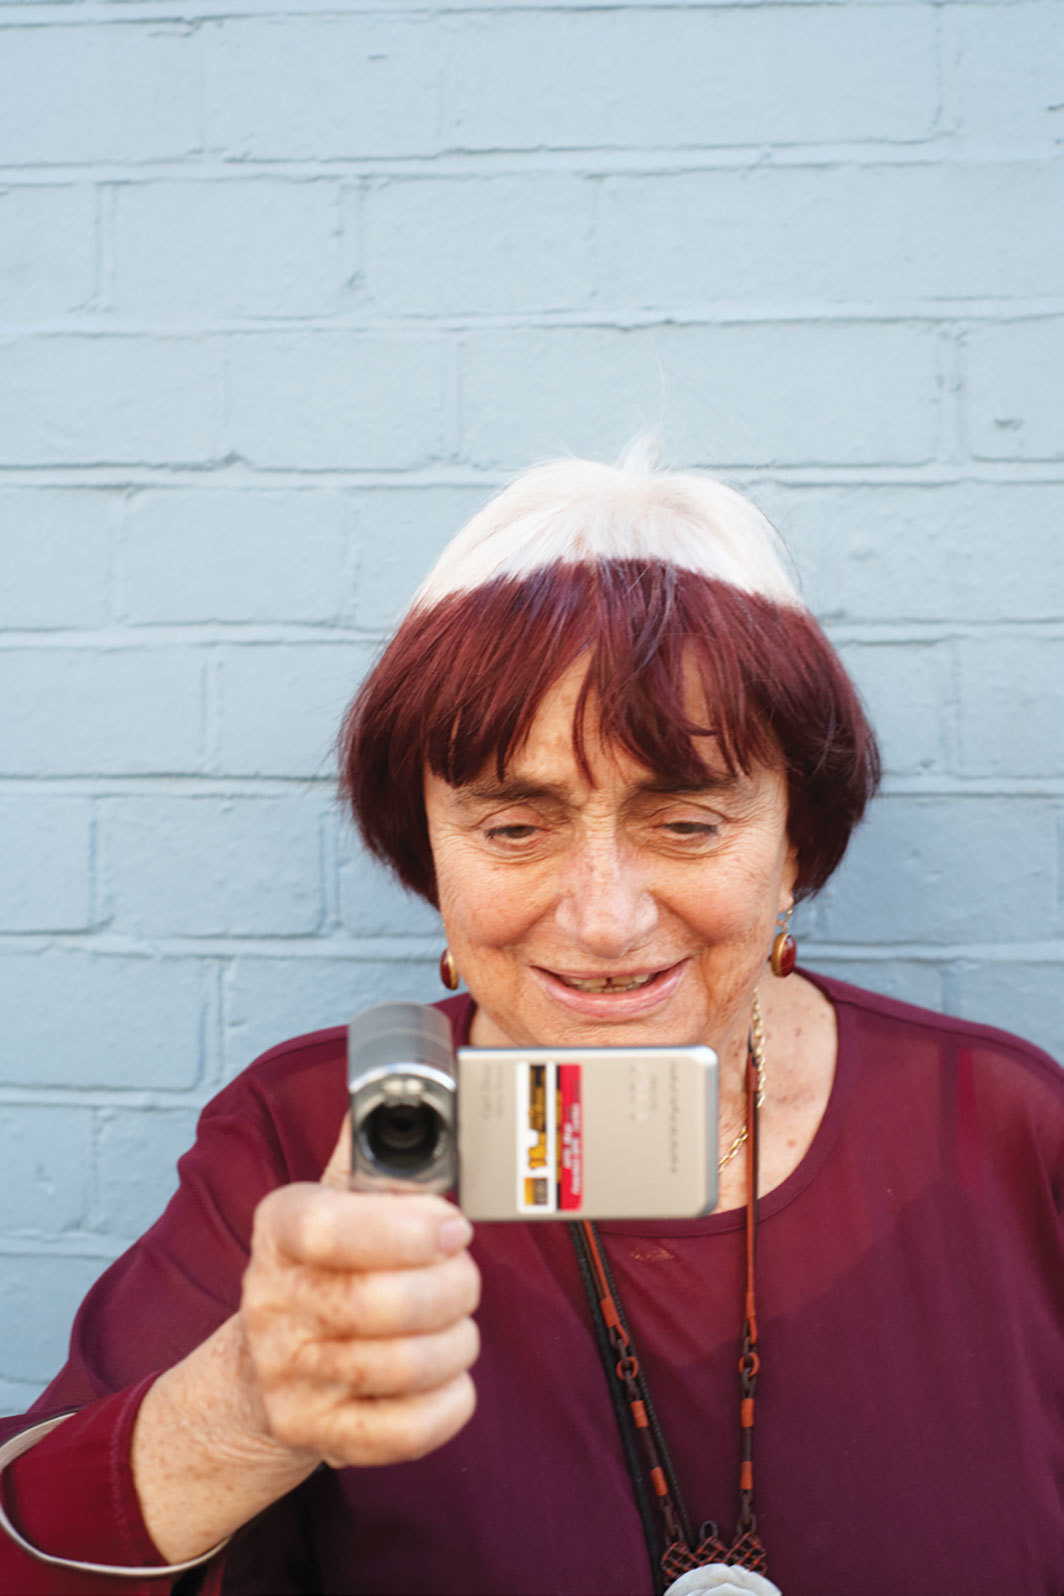 Agnès Varda, 2009. Photo: Charles Hopkinson/Camera Press/Redux.